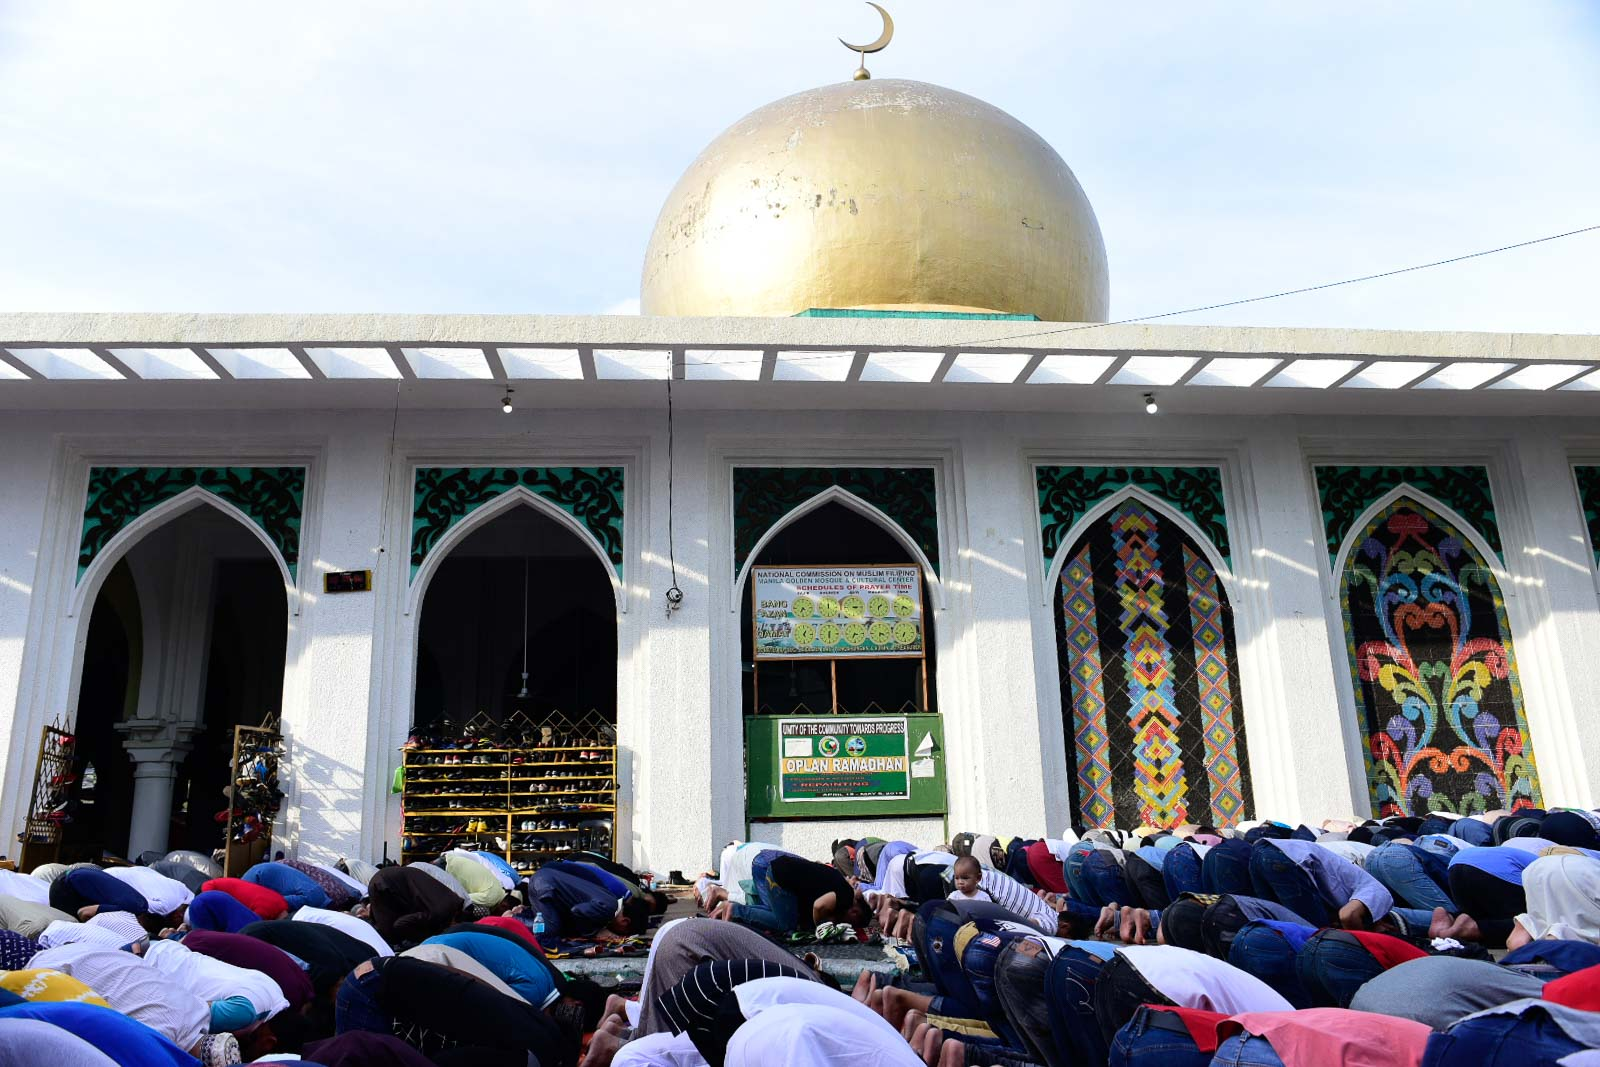 GOLDEN MOSQUE. Muslims pray outside during Eid'l Fitr prayers at the Globo de Oro mosque in Quiapo, Manila. Photo by Rob Reyes/Rappler